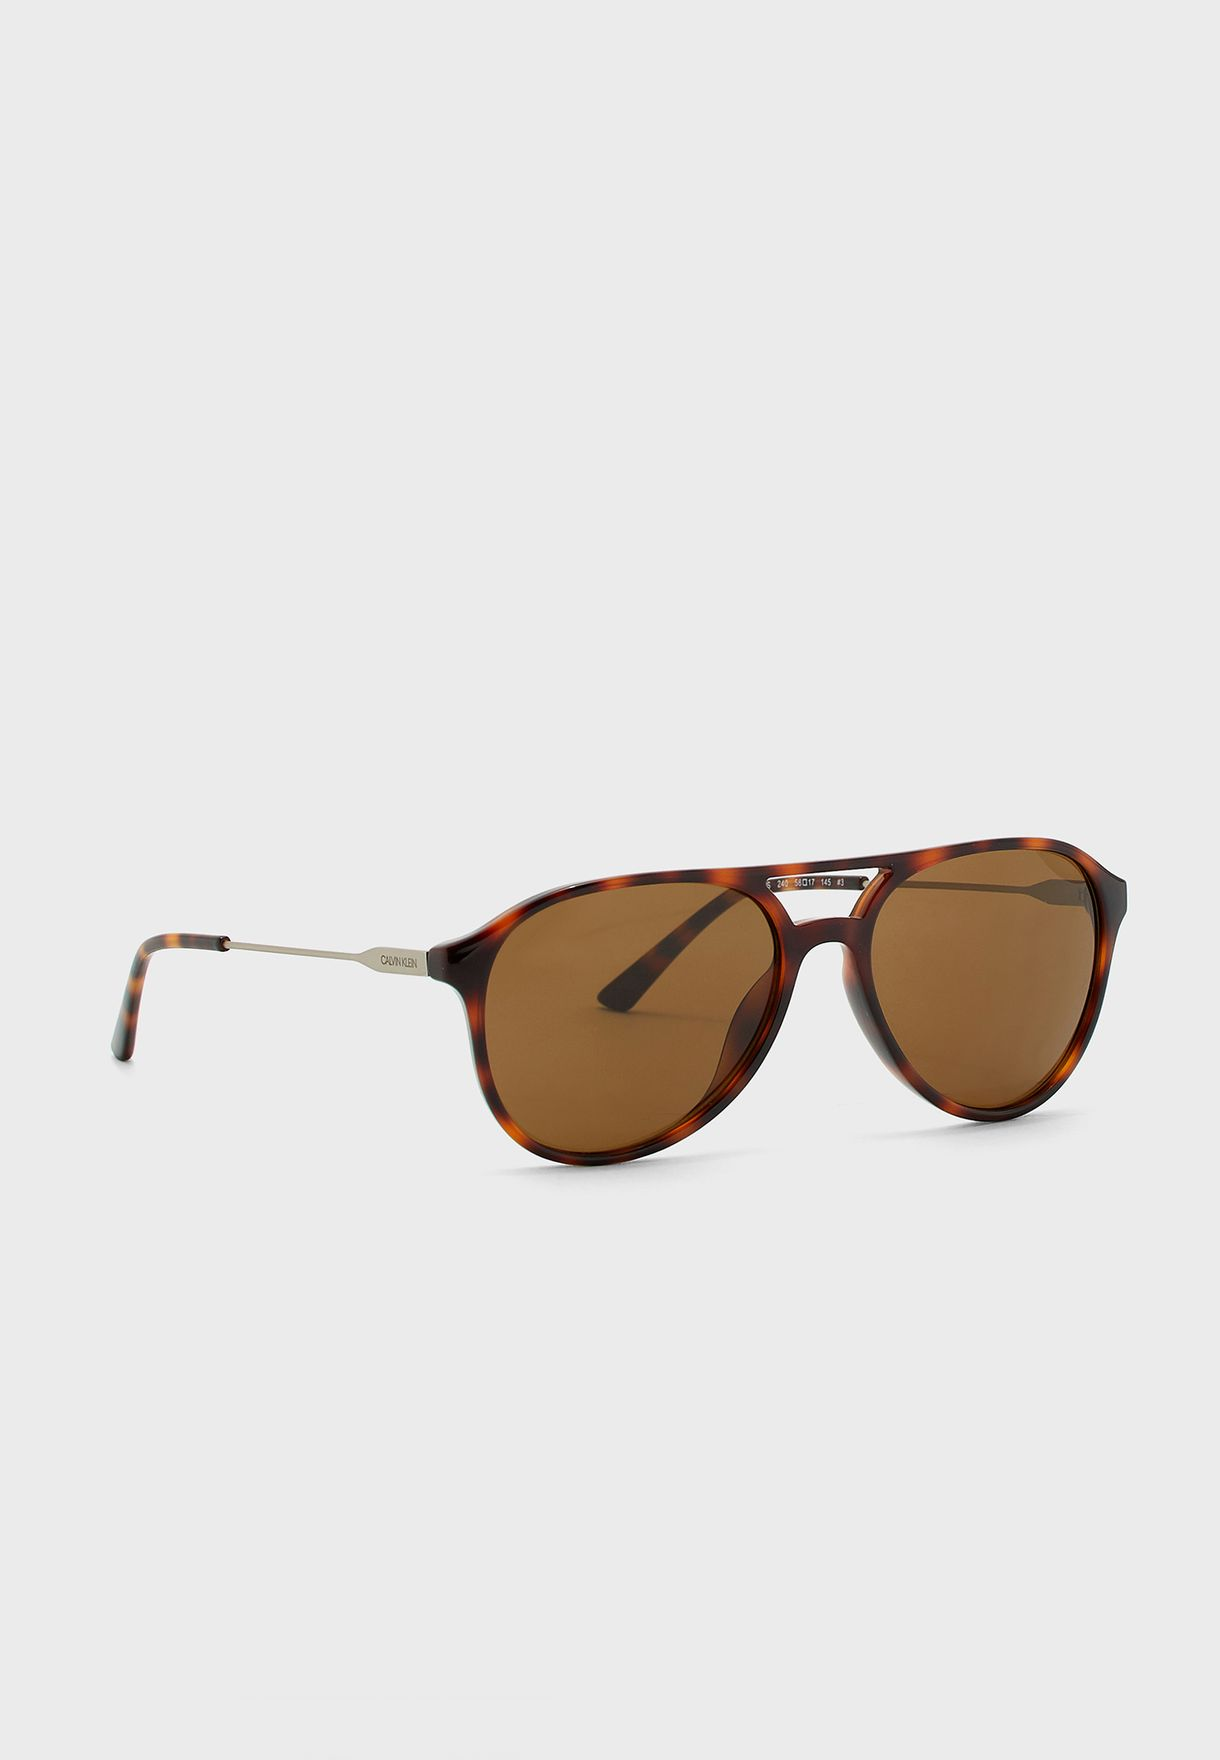 CK20702S Aviator Sunglasses